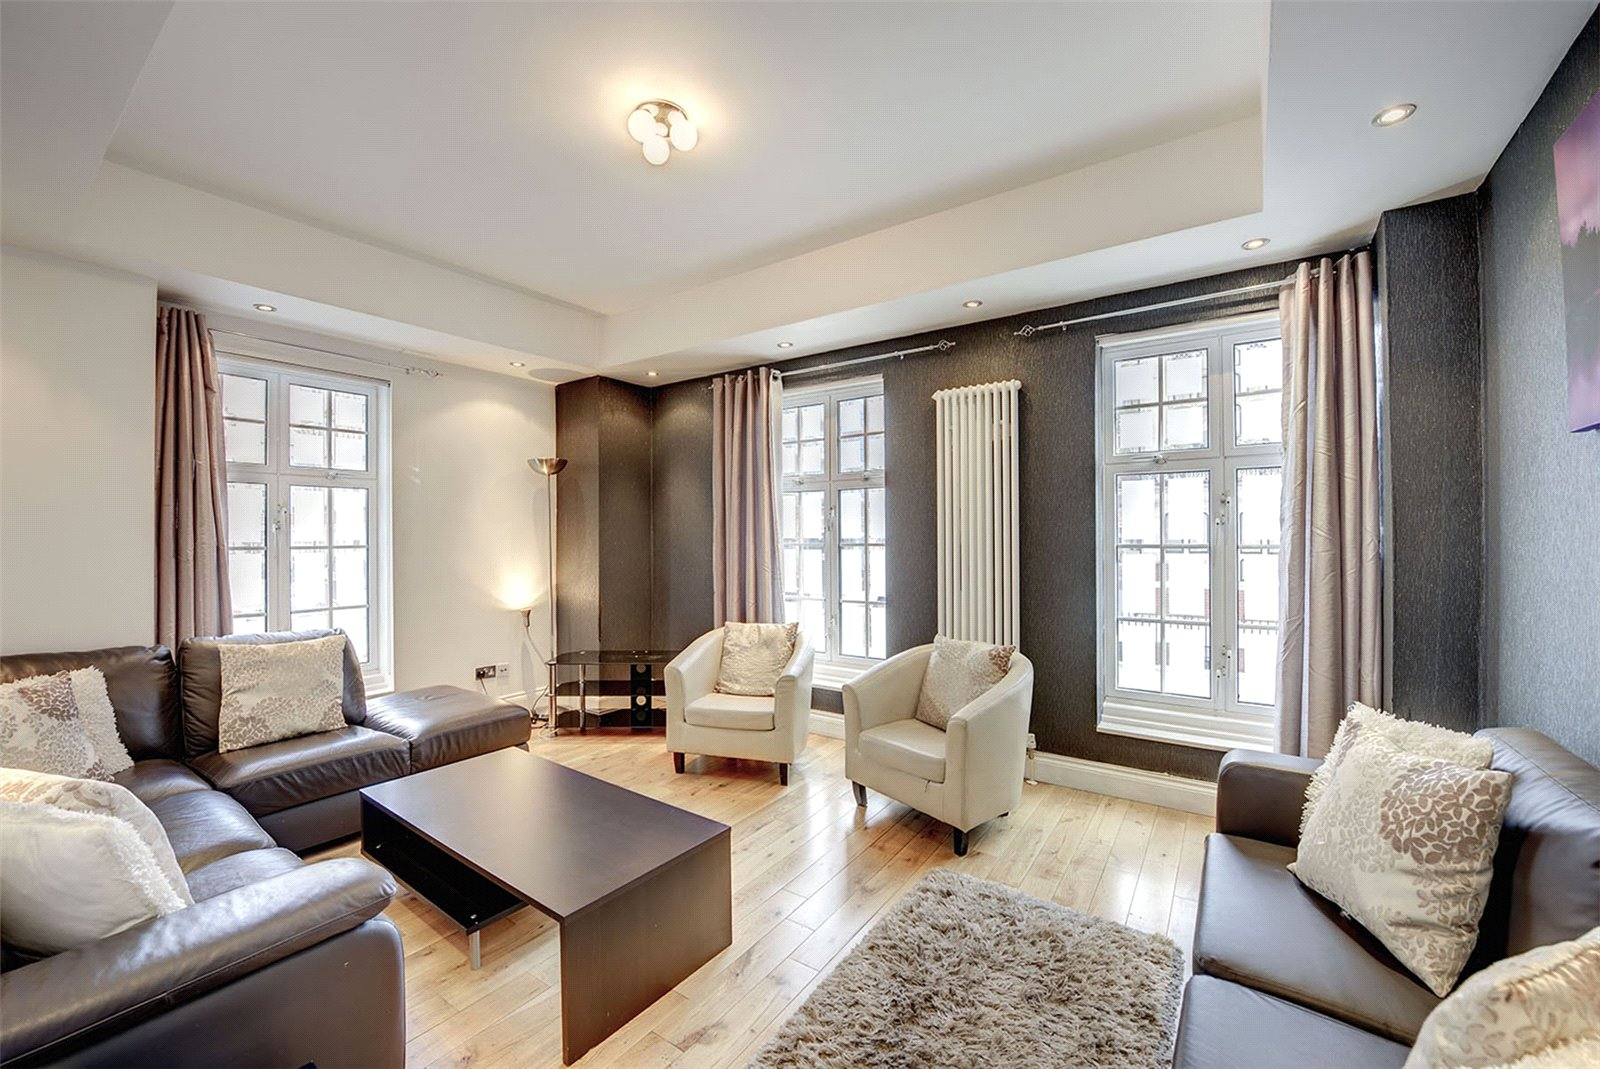 Apartments / Flats for Rent at Aldford House, Mayfair, London, W1K Aldford House, Mayfair, London, W1K